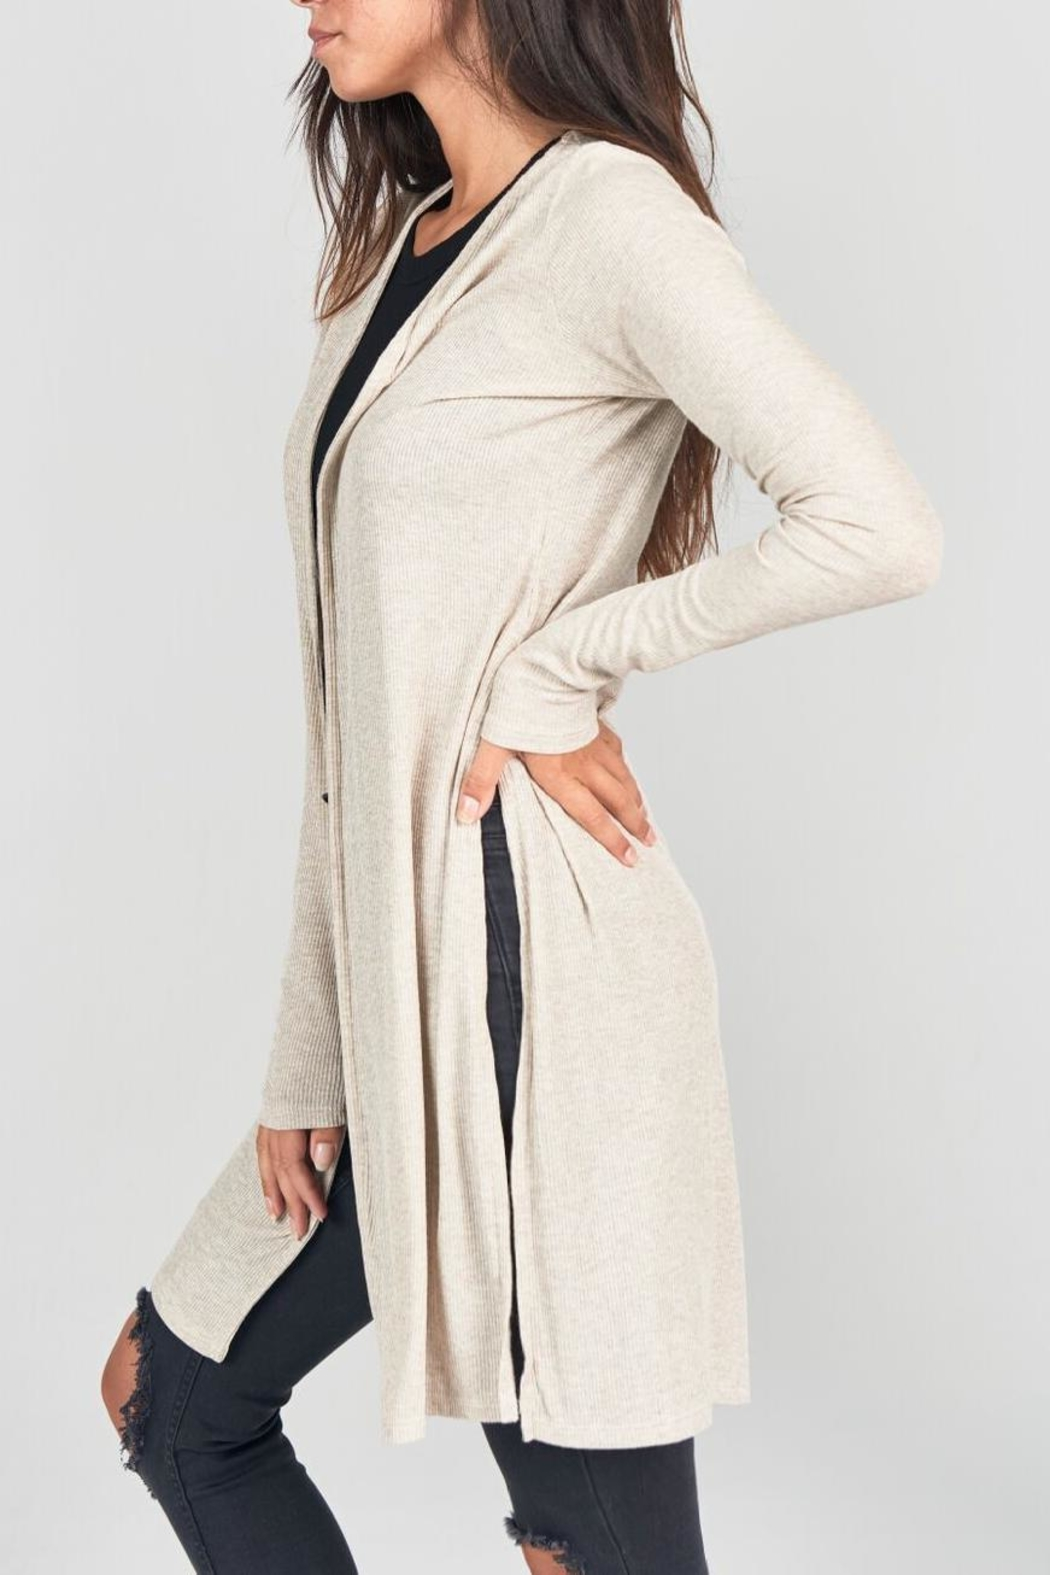 Joah Brown Long Line Open Cardigan - Front Full Image